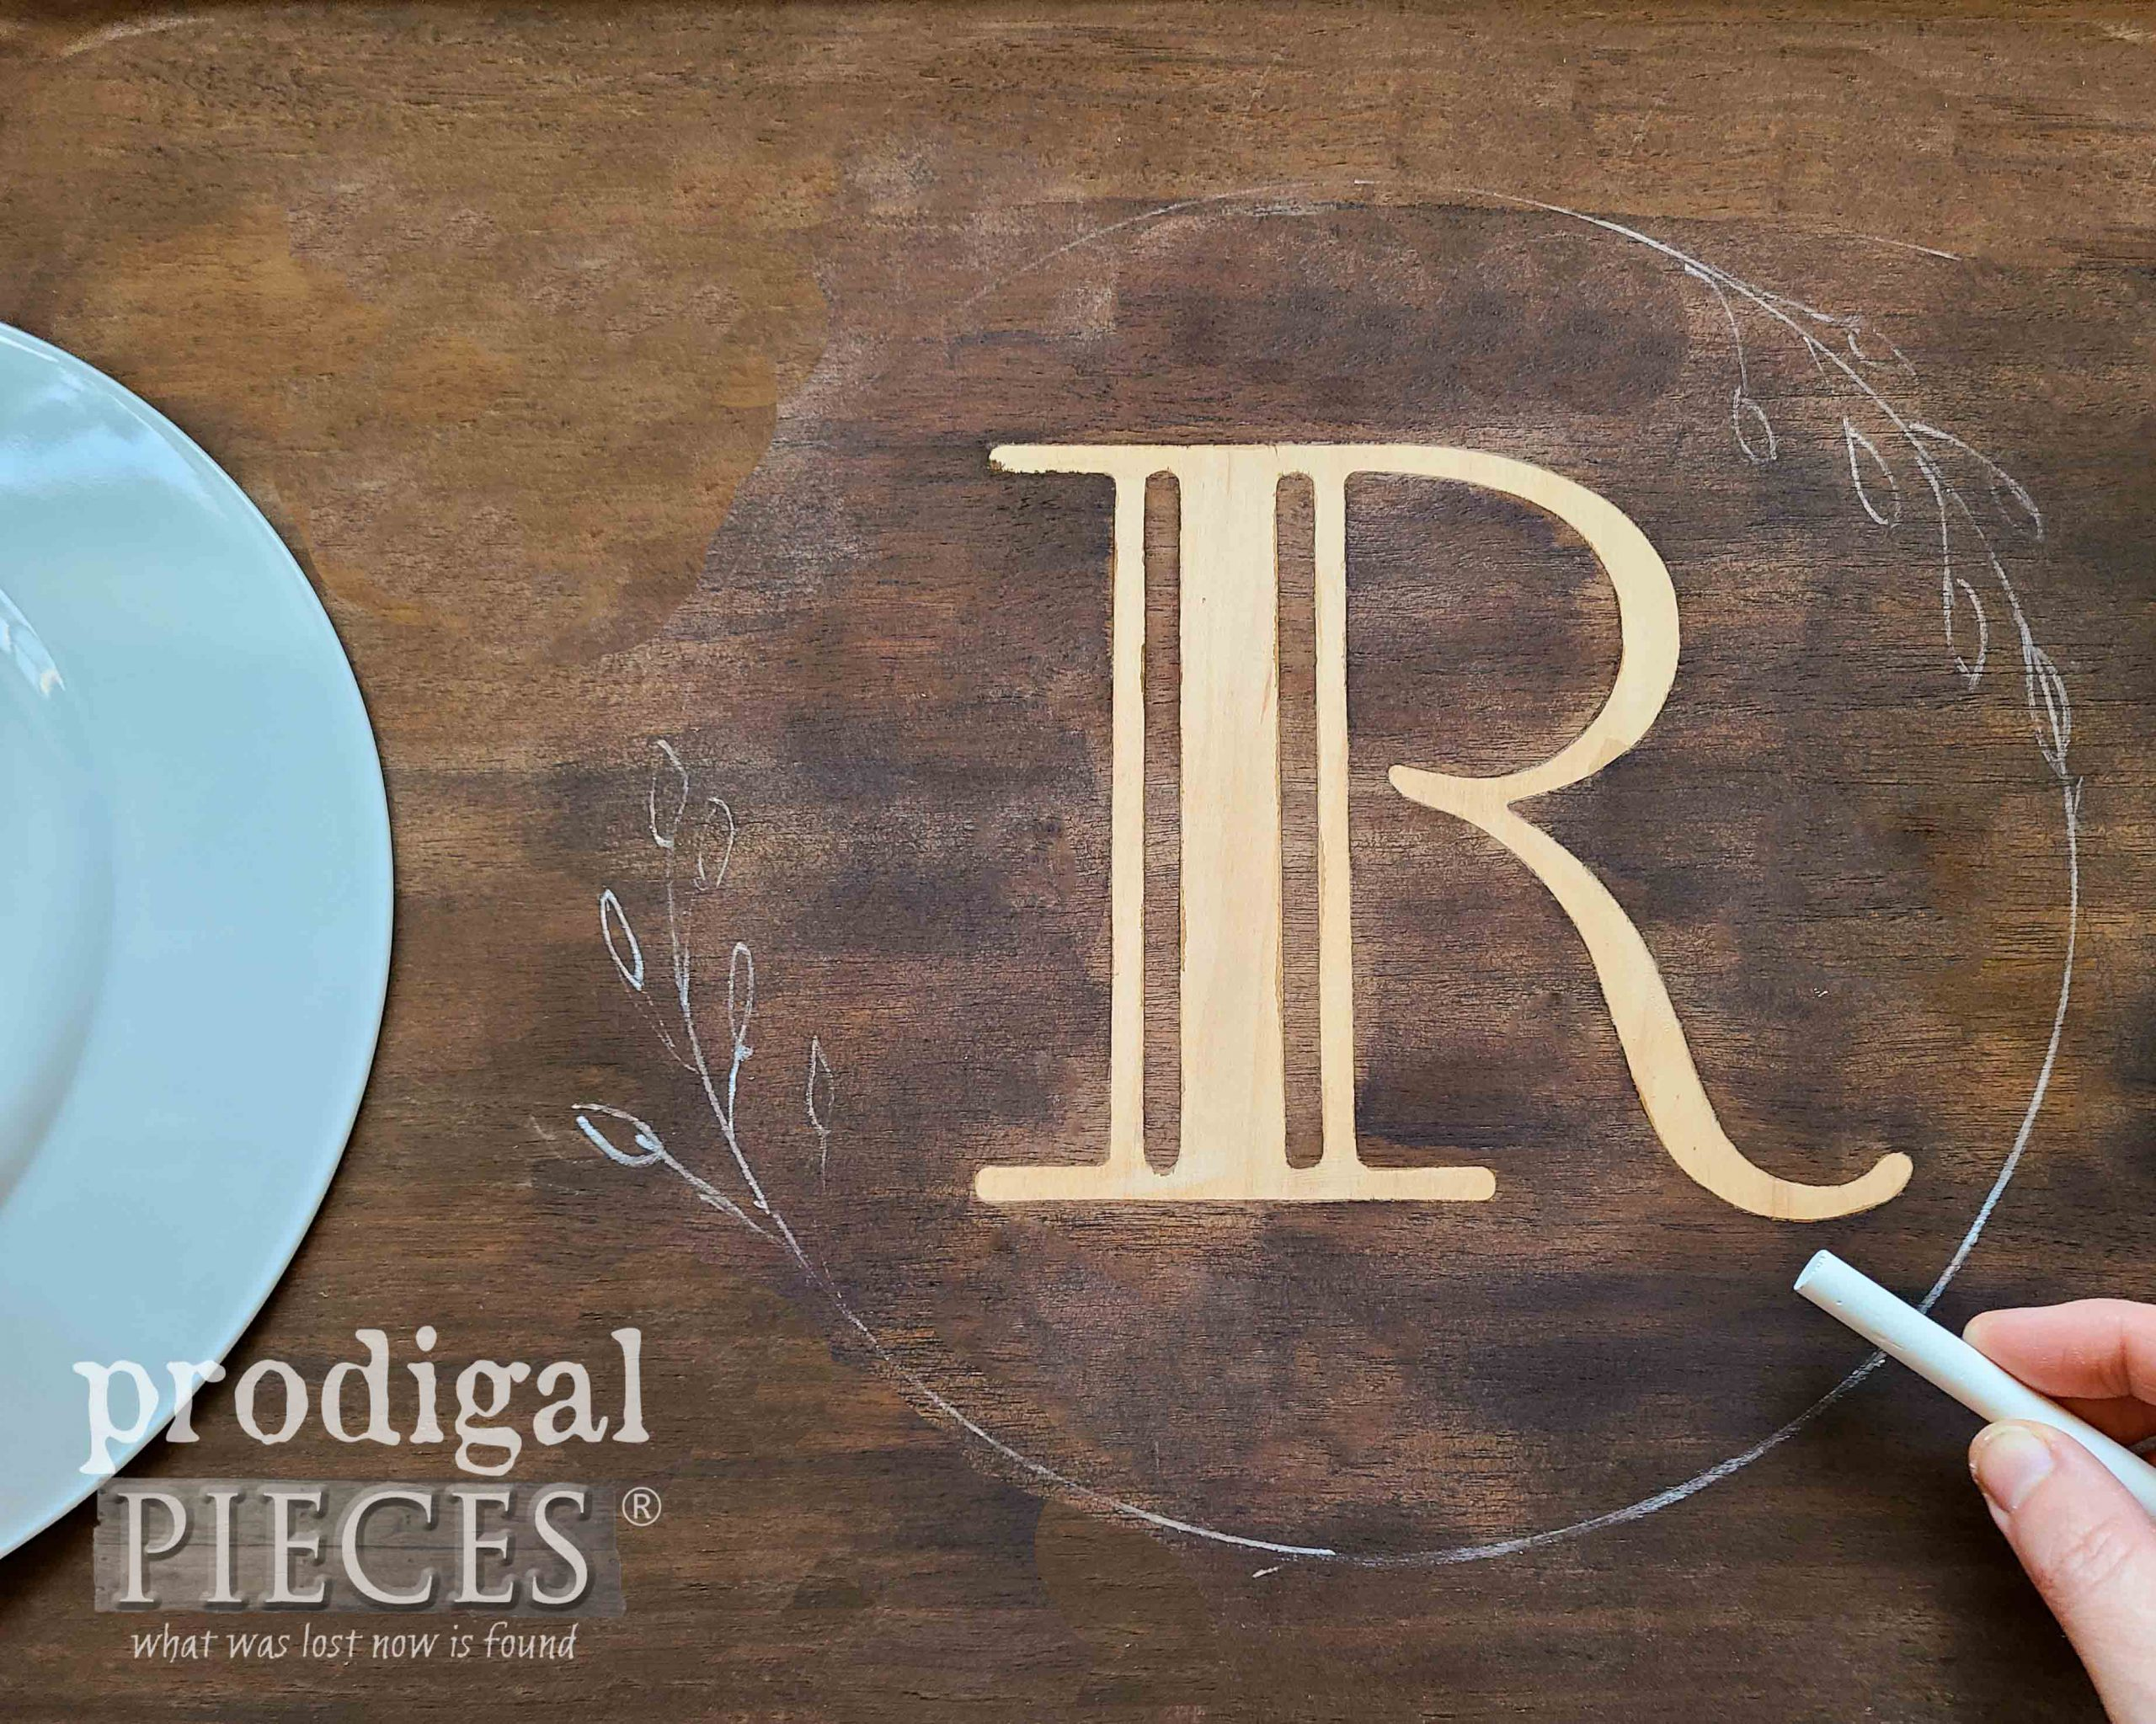 Drawing Wreath Around Monogram for Vintage Wooden Tray by Larissa of Prodigal Pieces | prodigalpieces.com #prodigalpieces